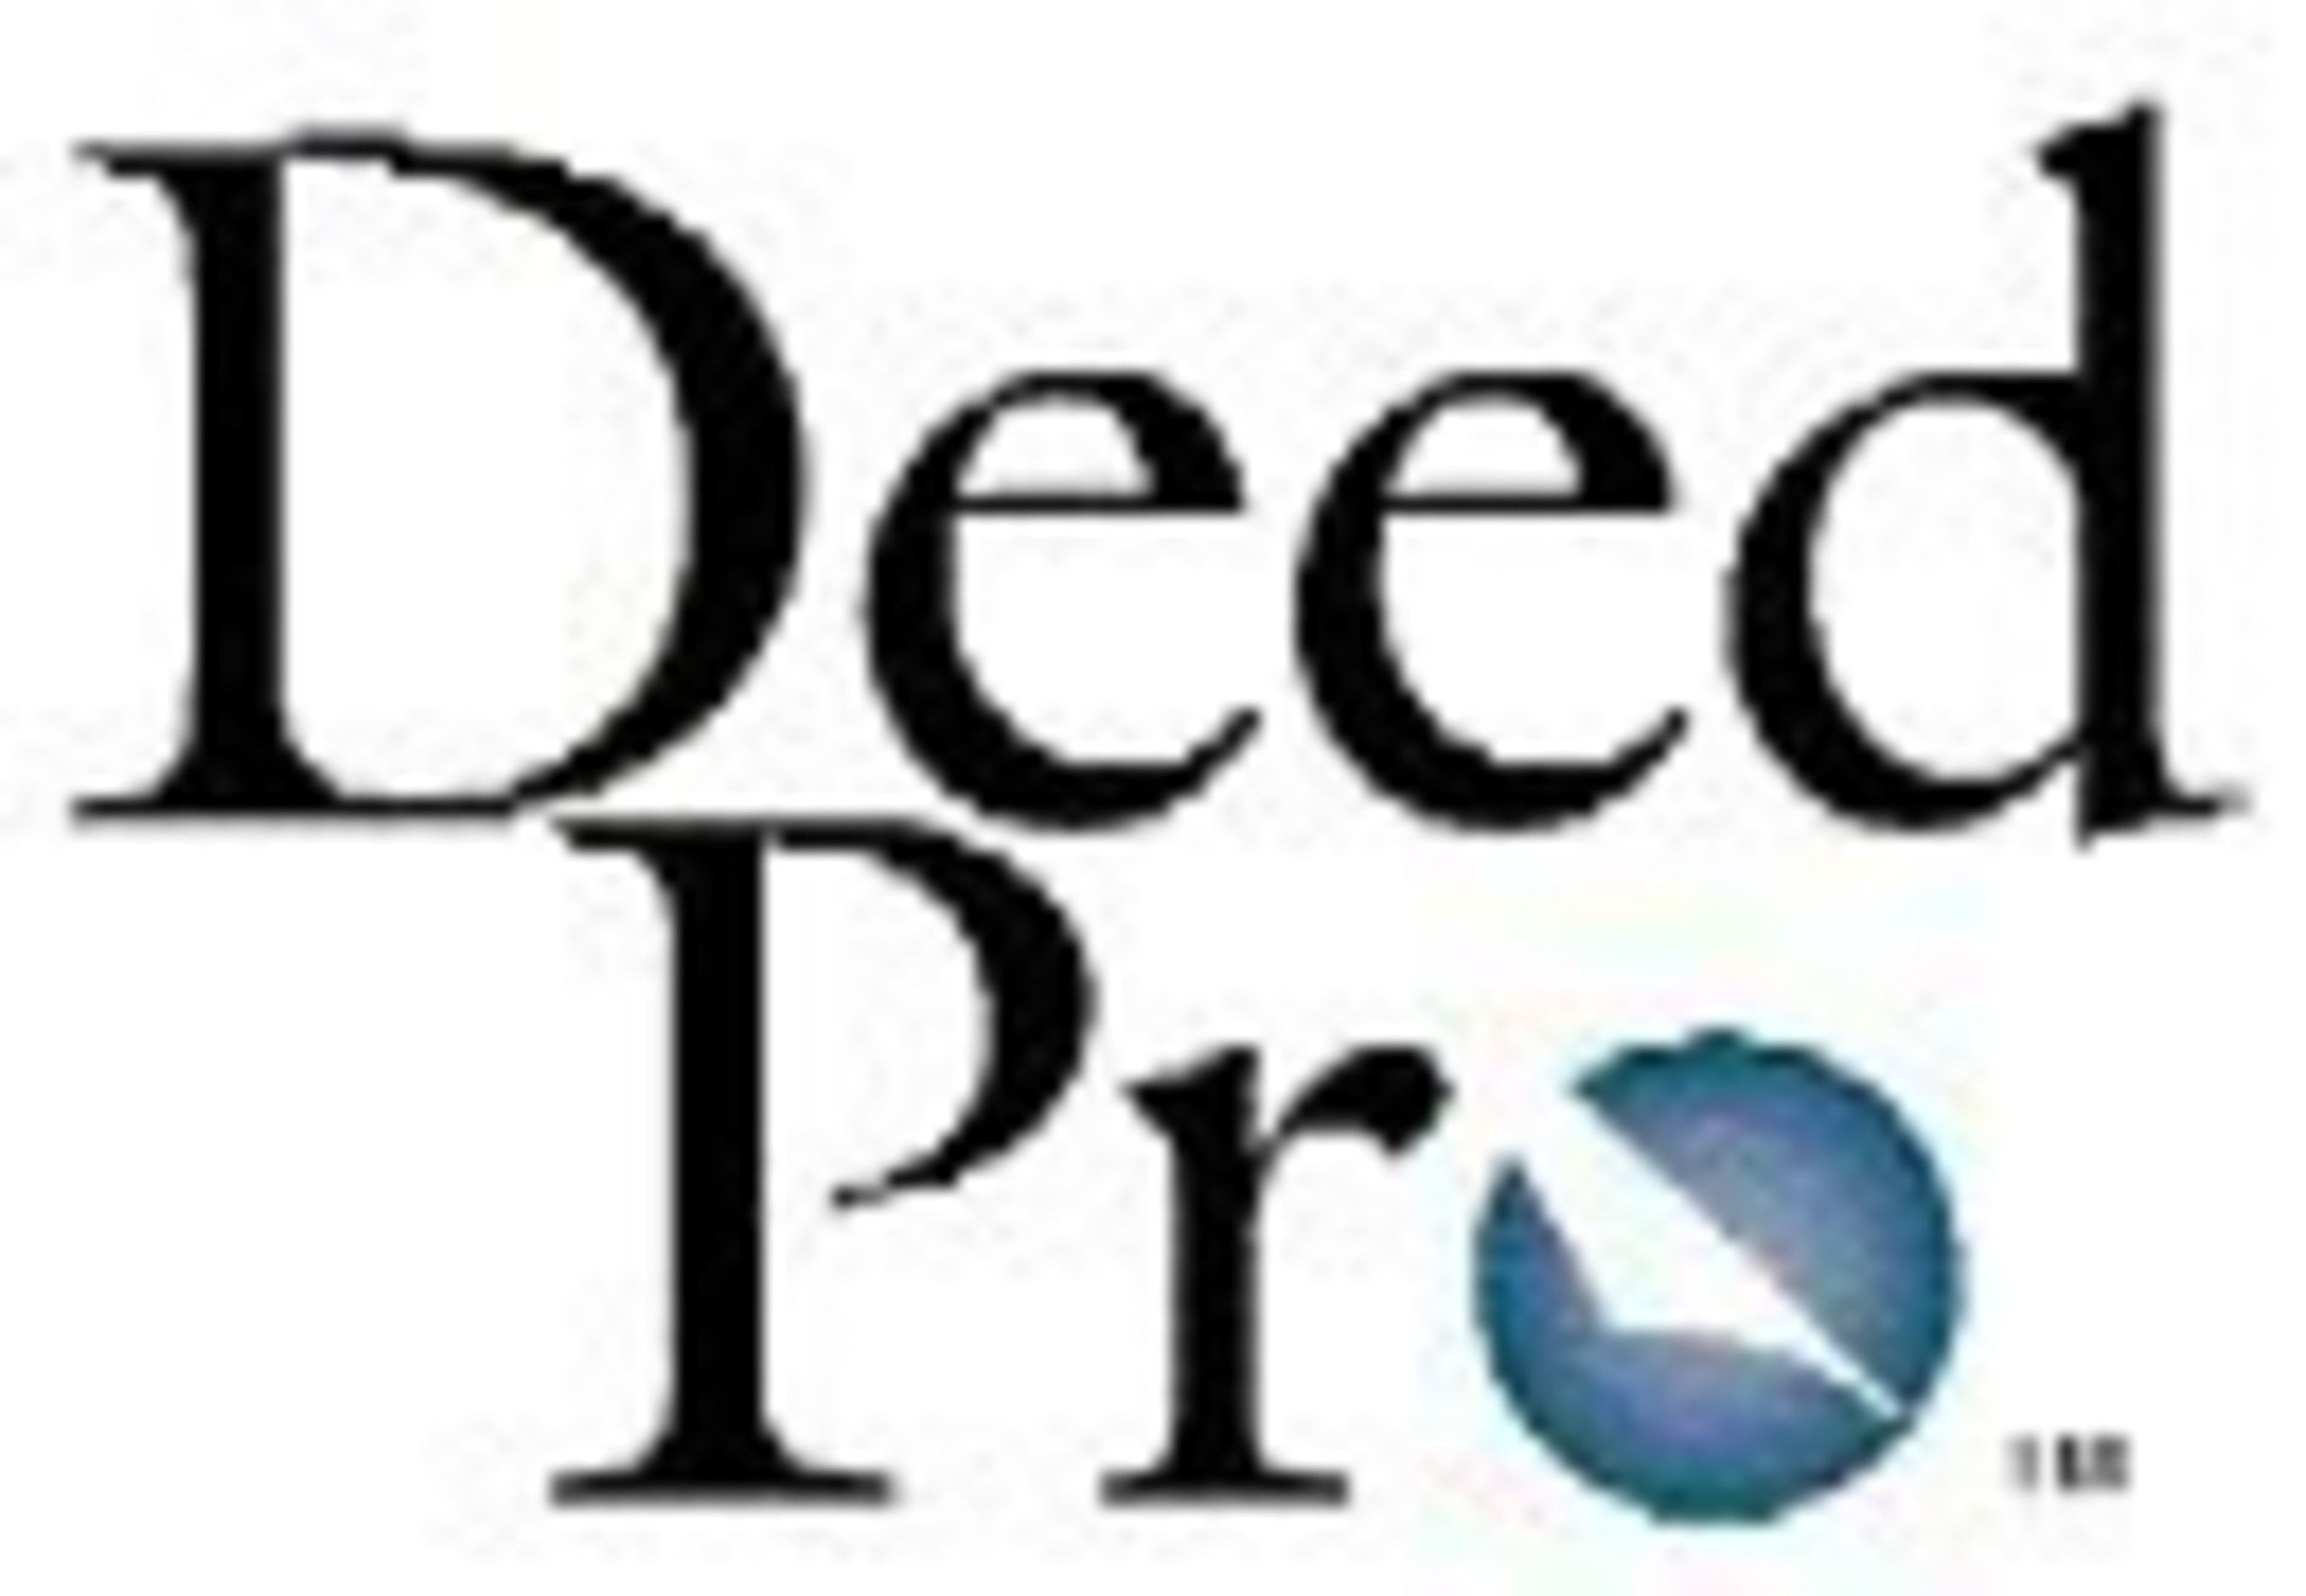 DeedPro Helps Attorneys Access State and County Deed Forms from One Website